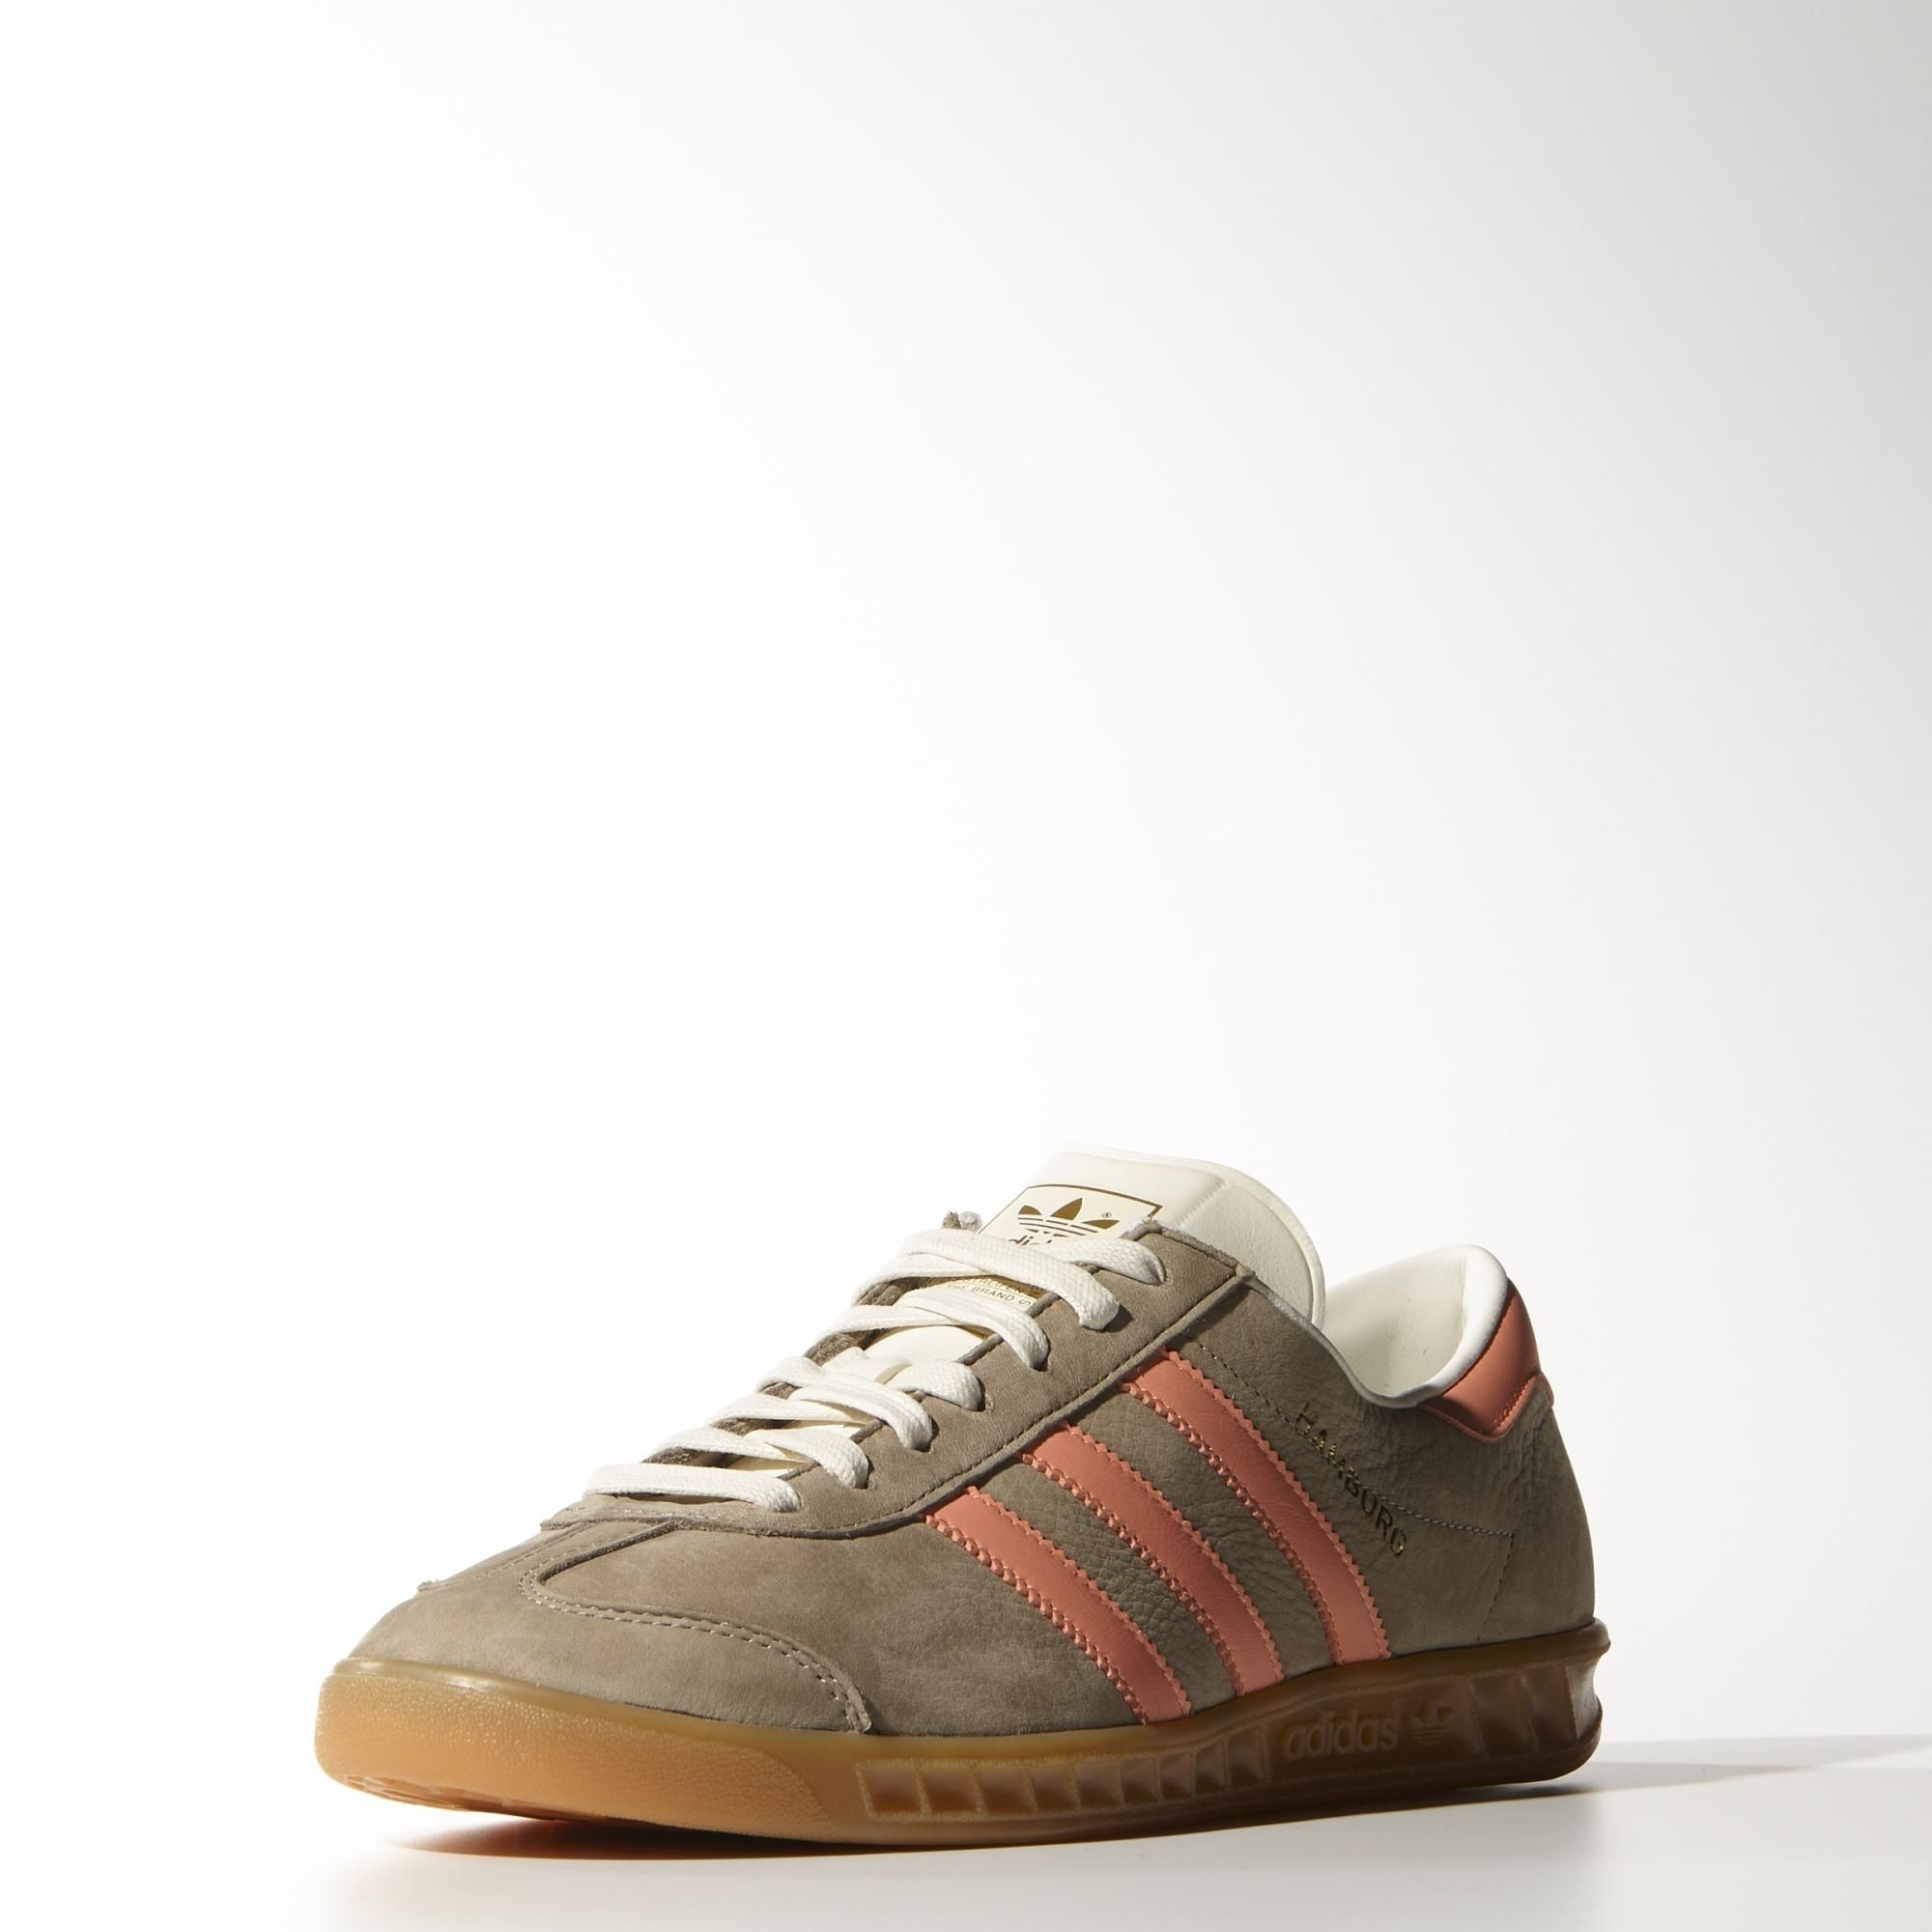 quality design 12e43 54b39 Discover your potential with adidas shoes for sports and lifestyle.